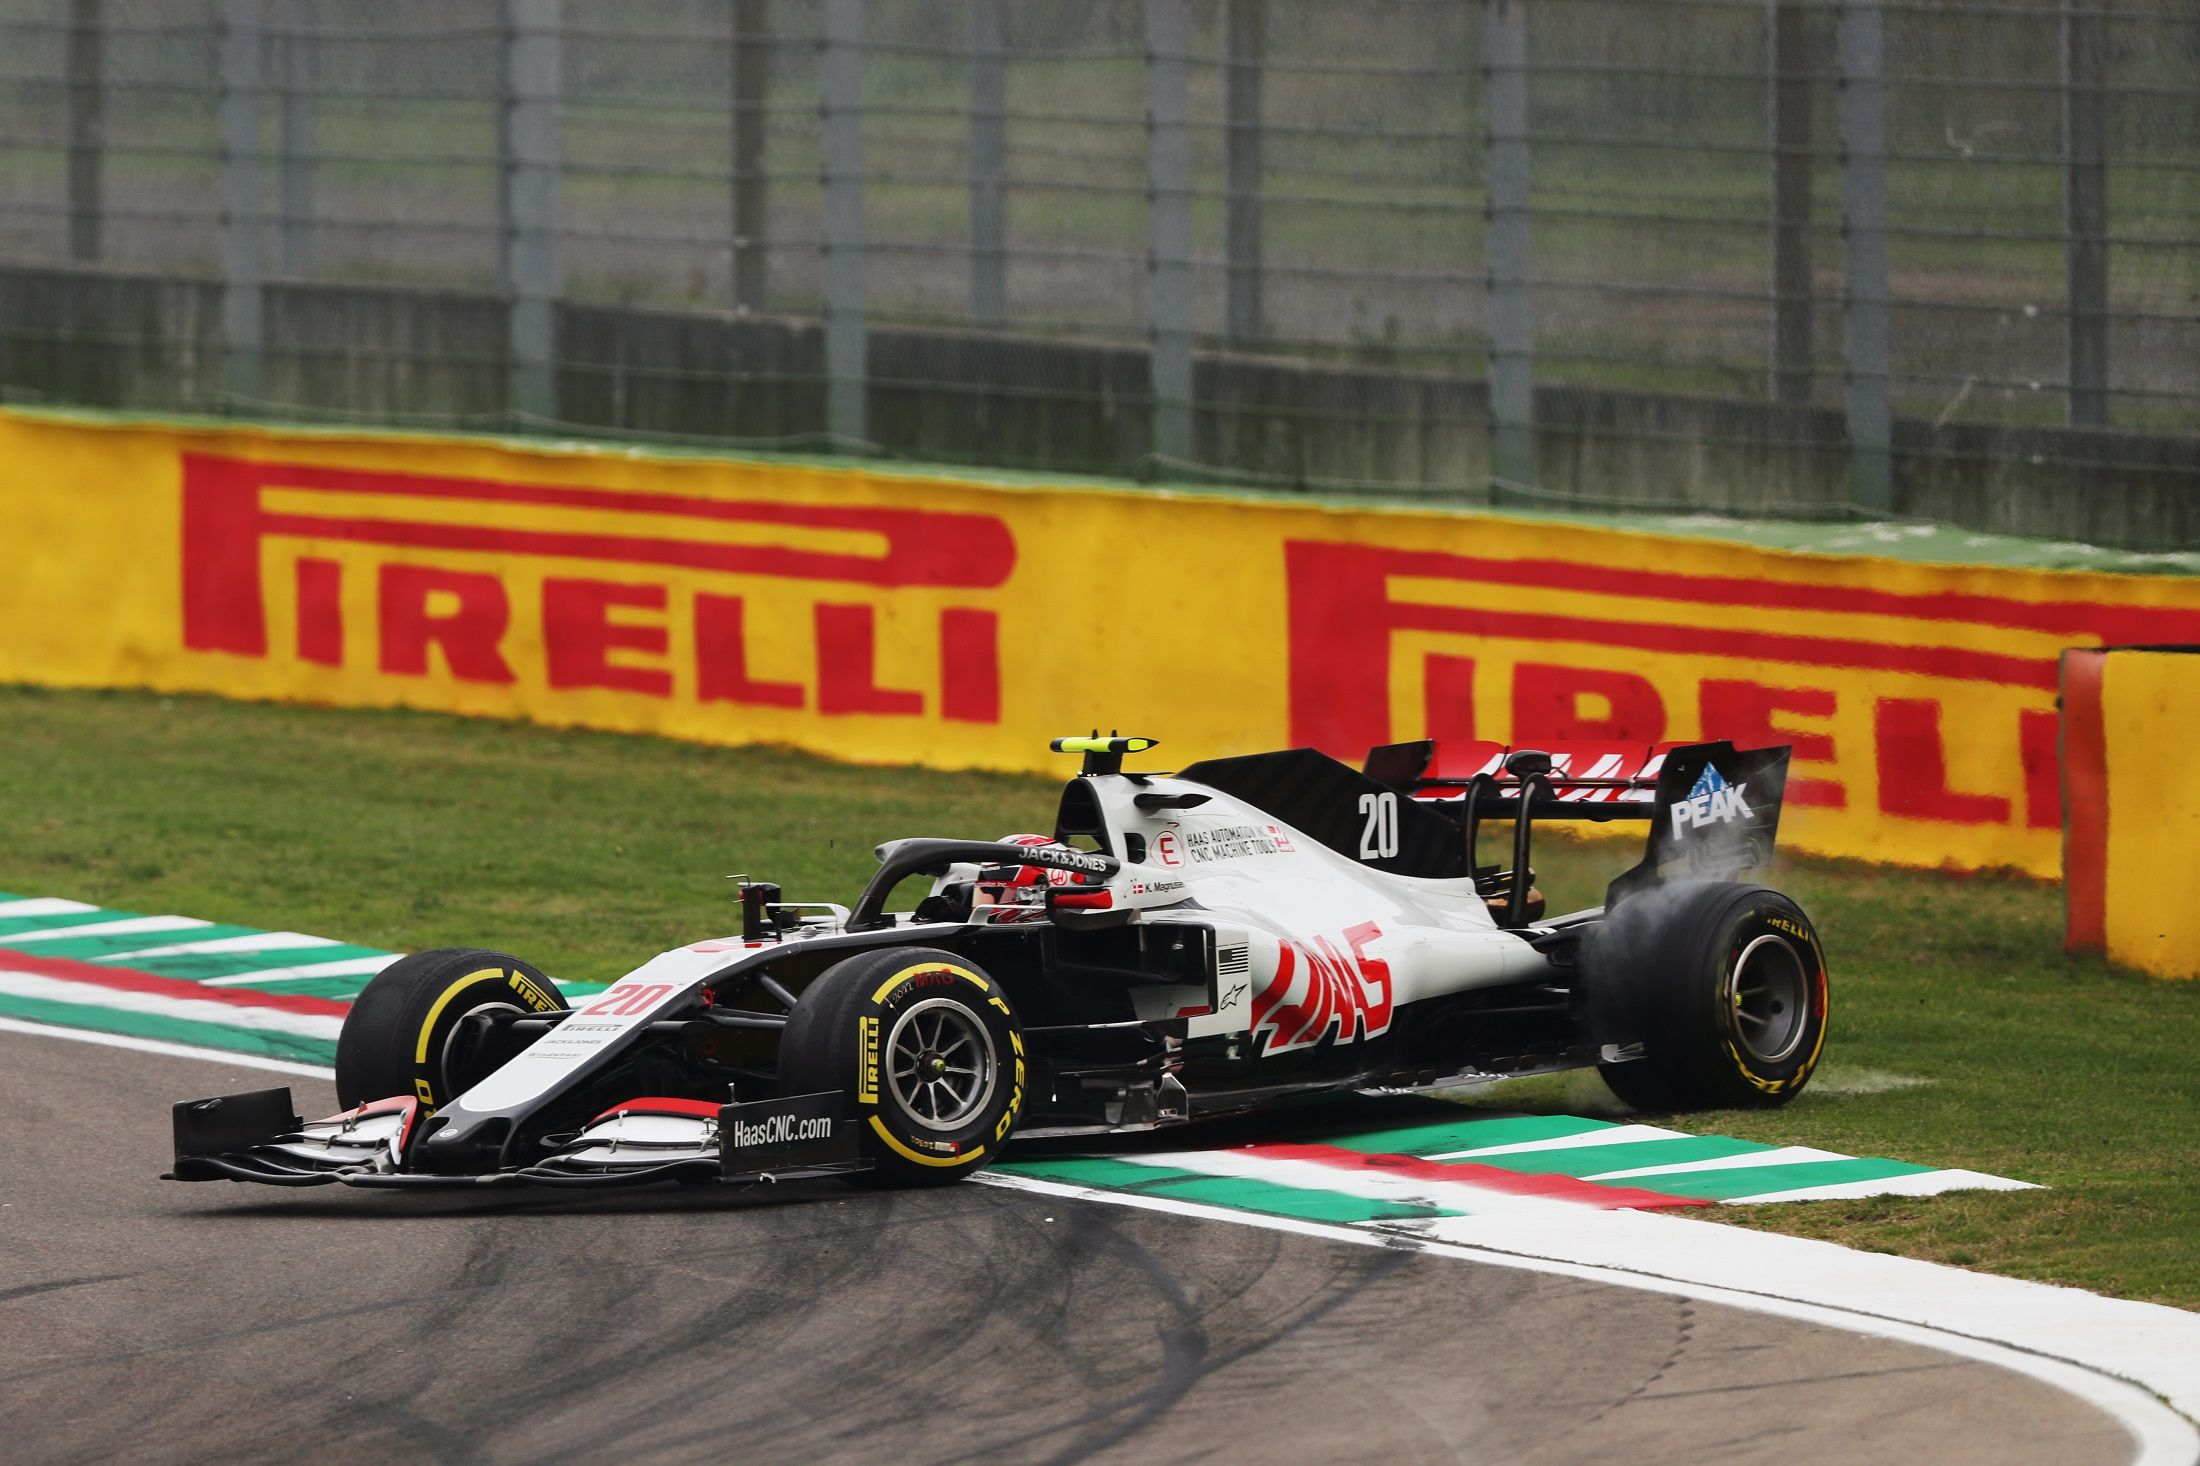 Kevin Magnussen, Haas, F1